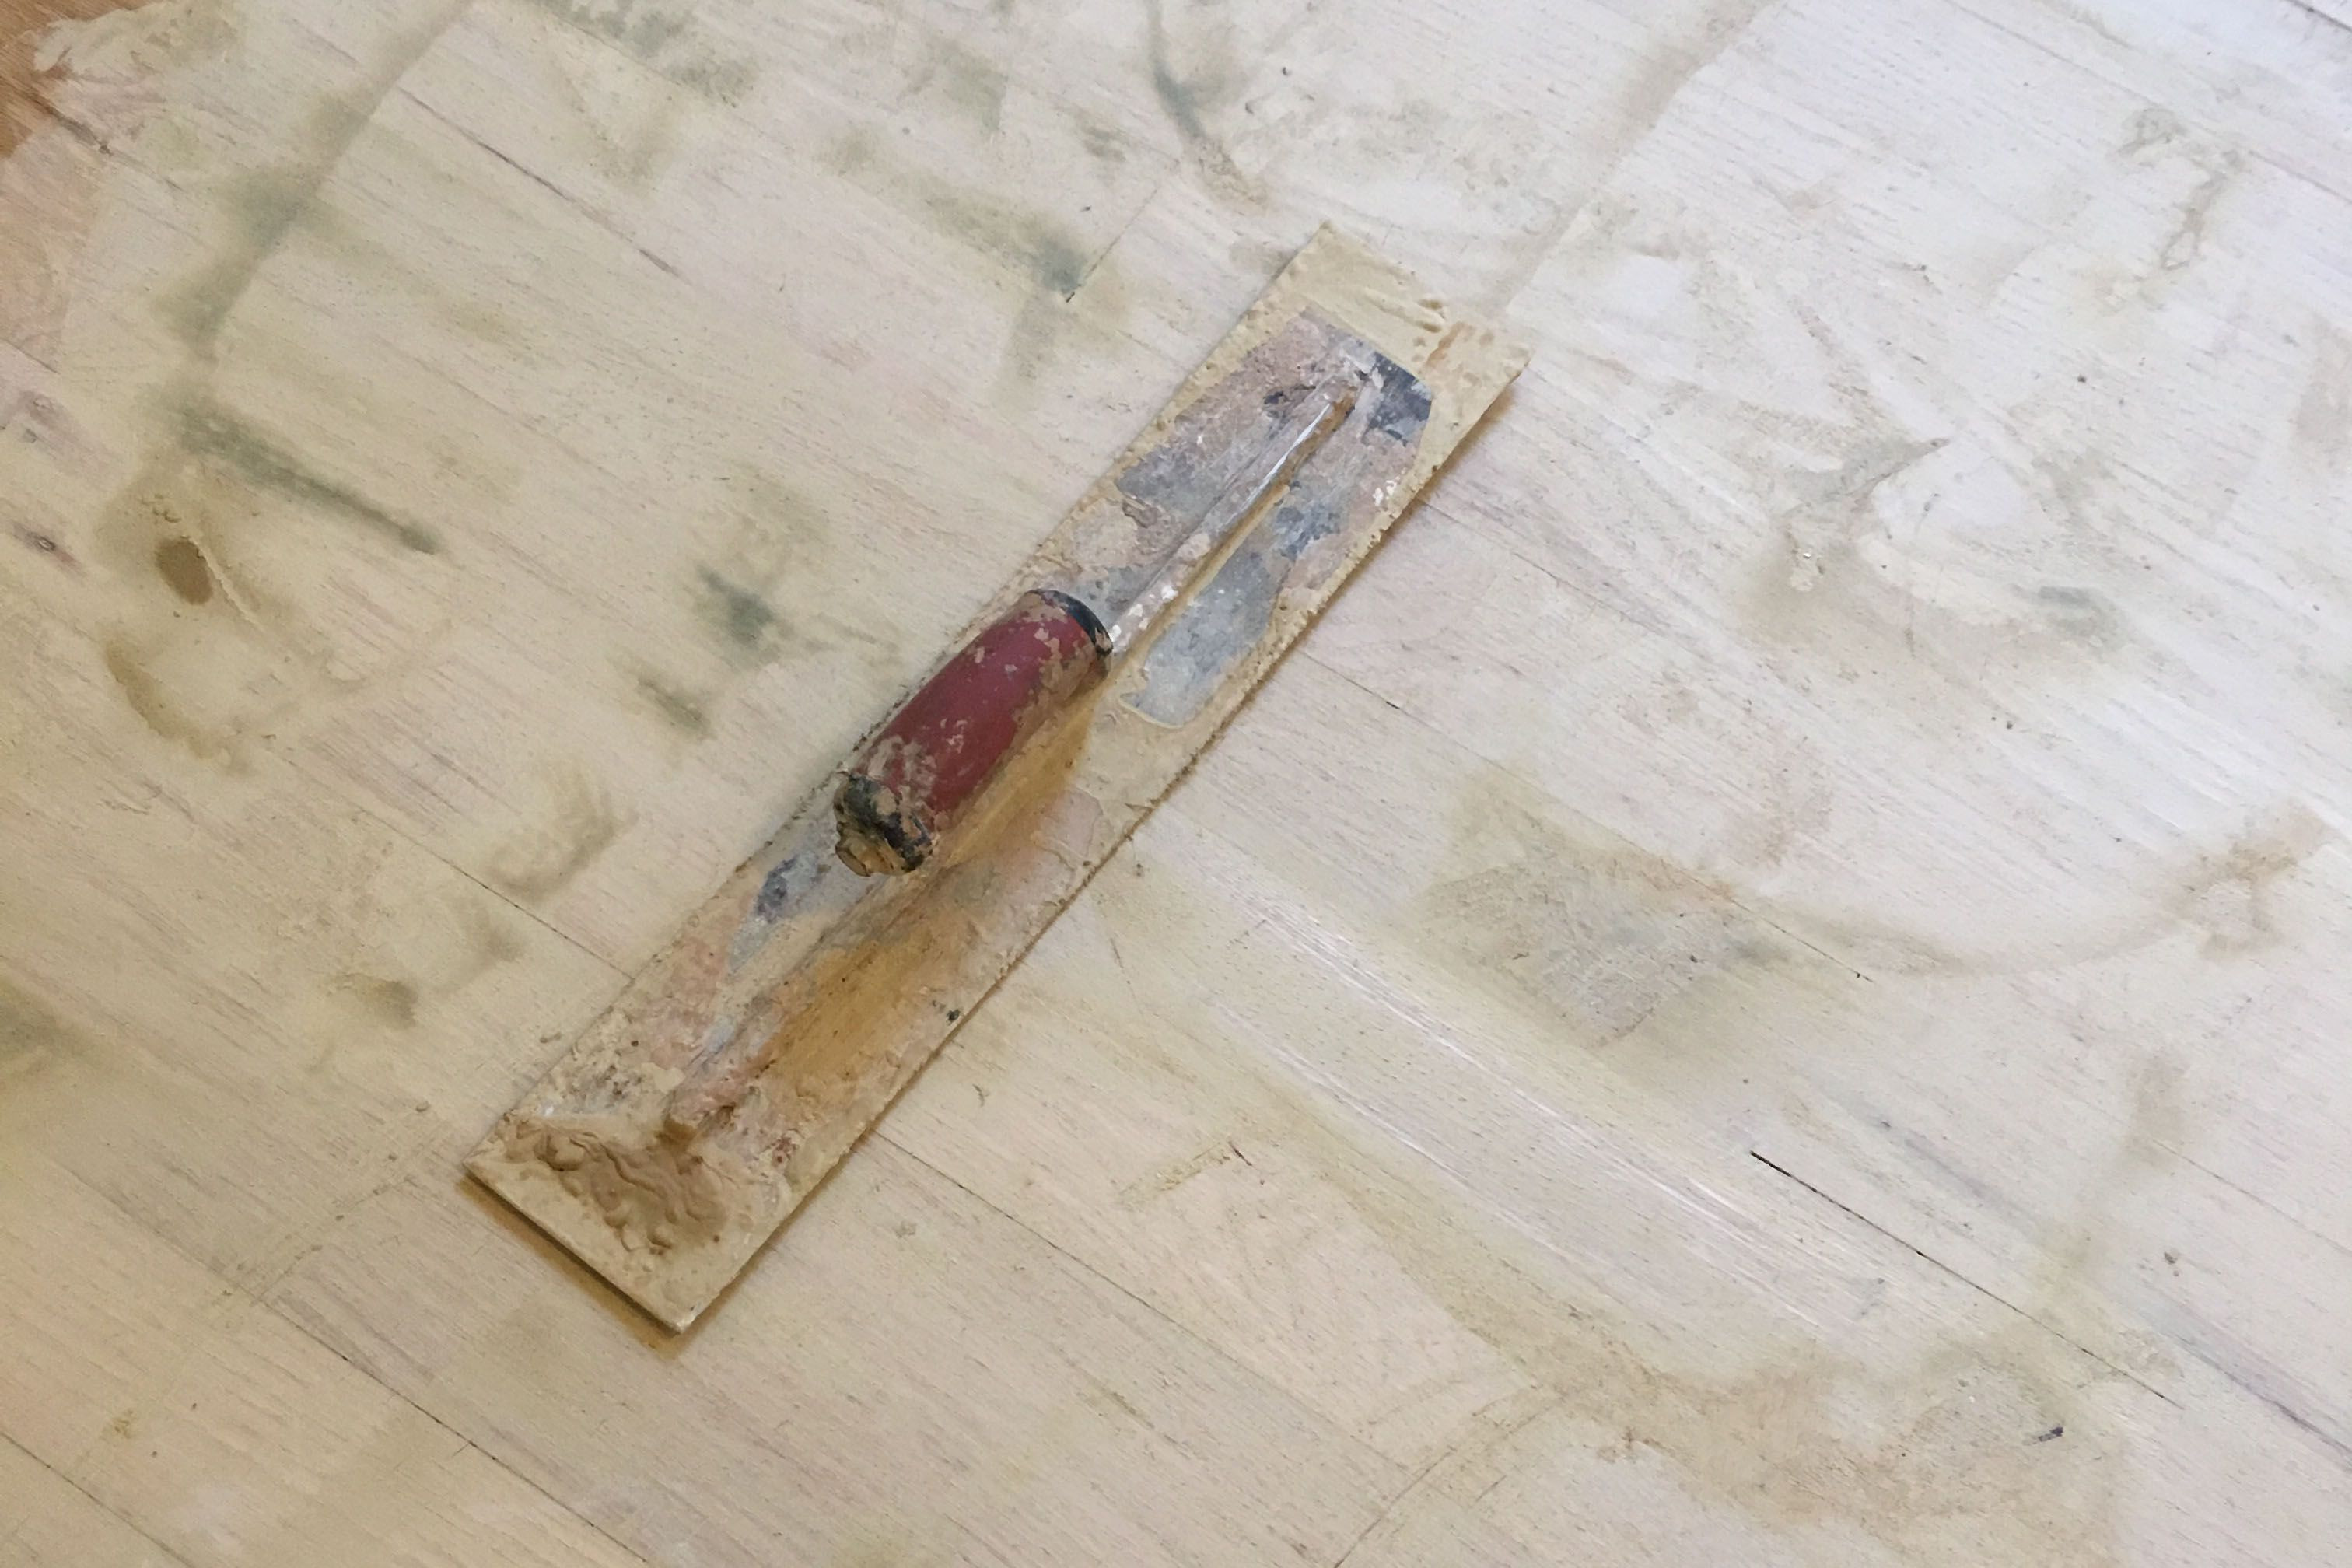 how to repair and refinish hardwood floors of 7 things to know before you refinish hardwood floors with regard to trough hardwood floor manhattan avenue via smallspaces about com 579138783df78c173490f8a5